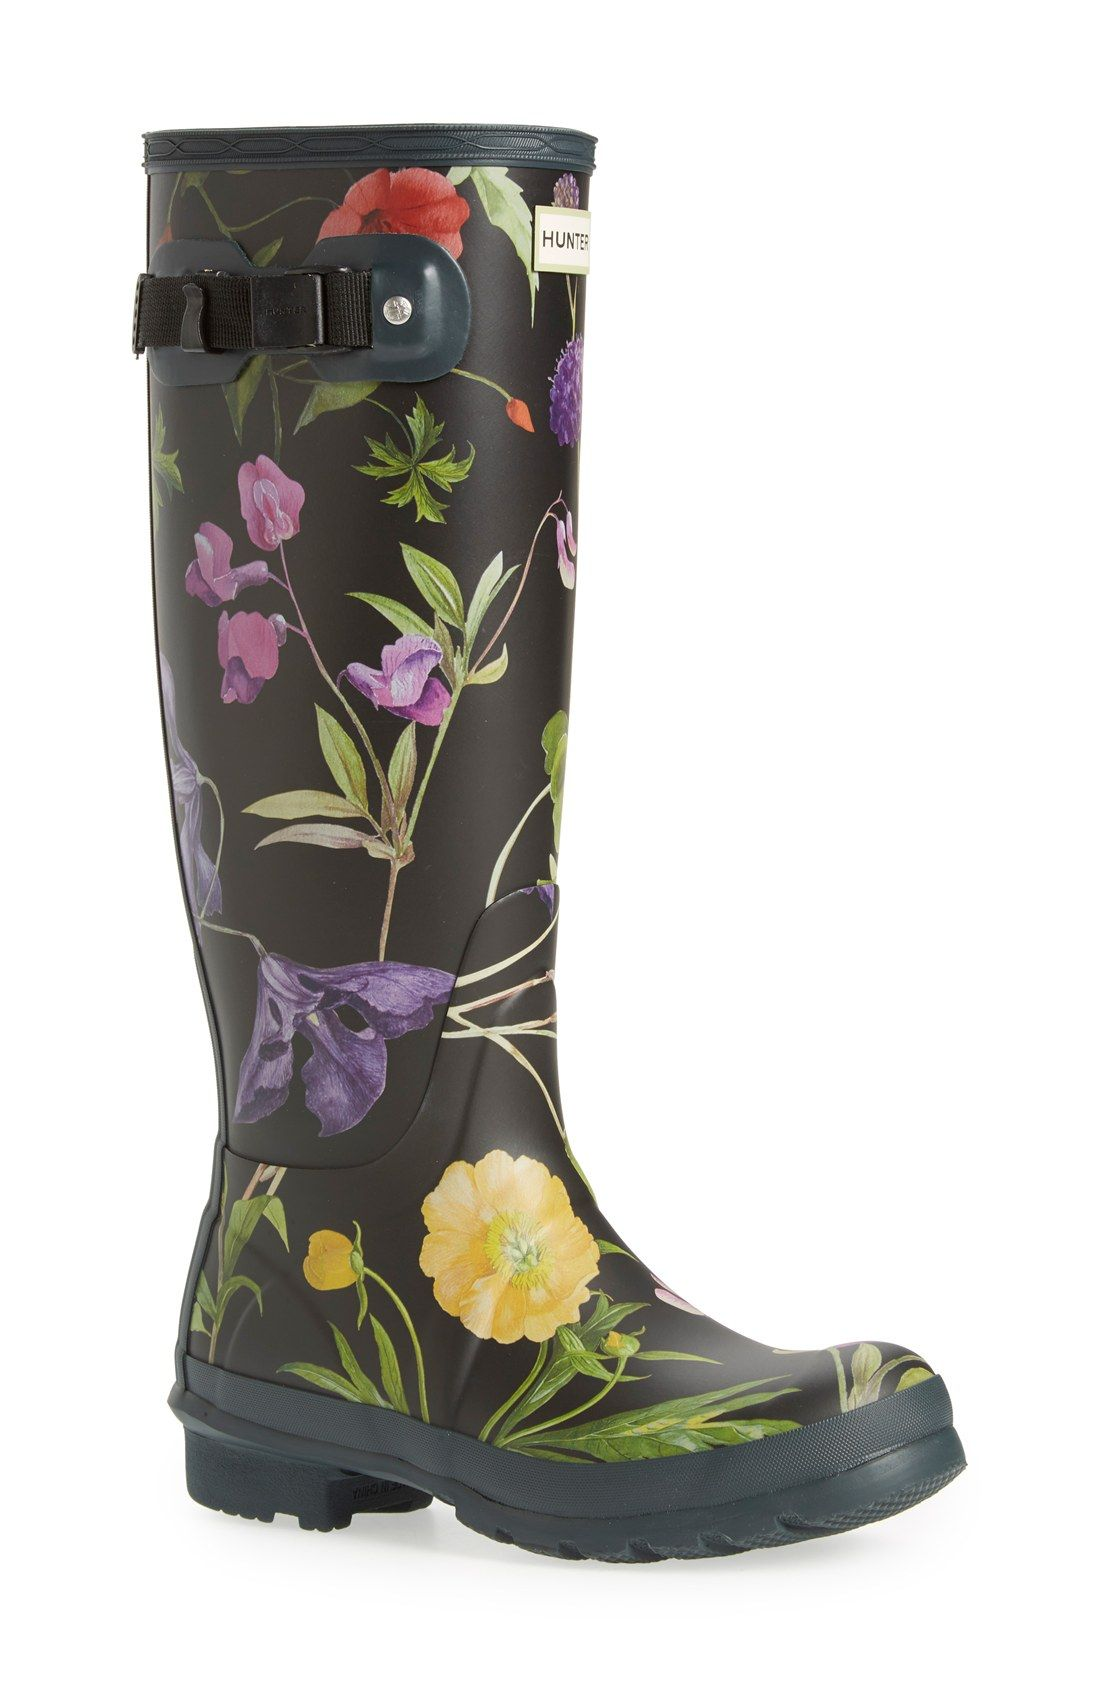 Royal Horticultural Society' Print Waterproof Rain Boot | High ...